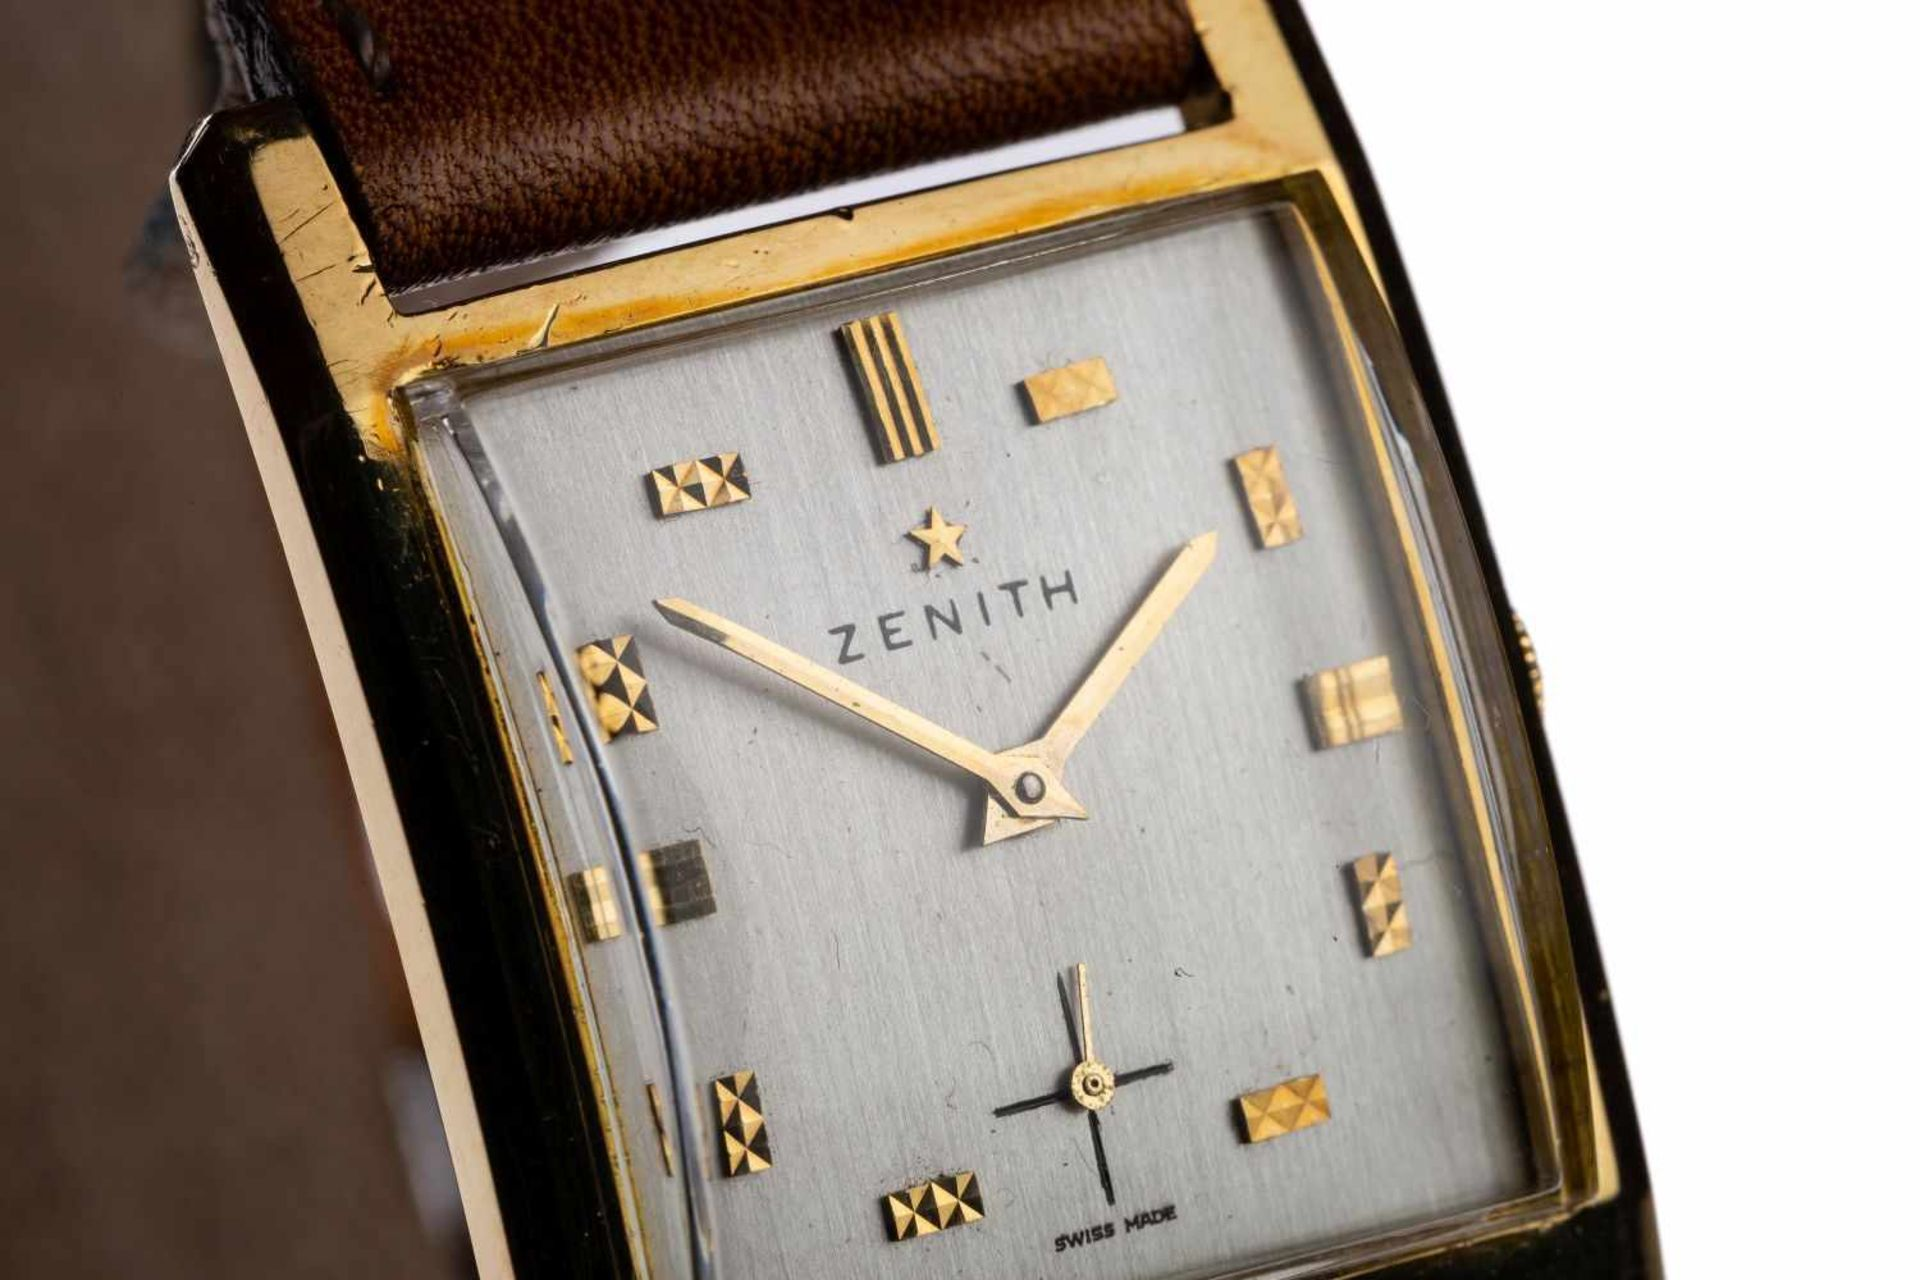 Los 84 - Zenith Vintage18kt gold watch on leather strap 37x26mm, manual wind construction year 1940 -